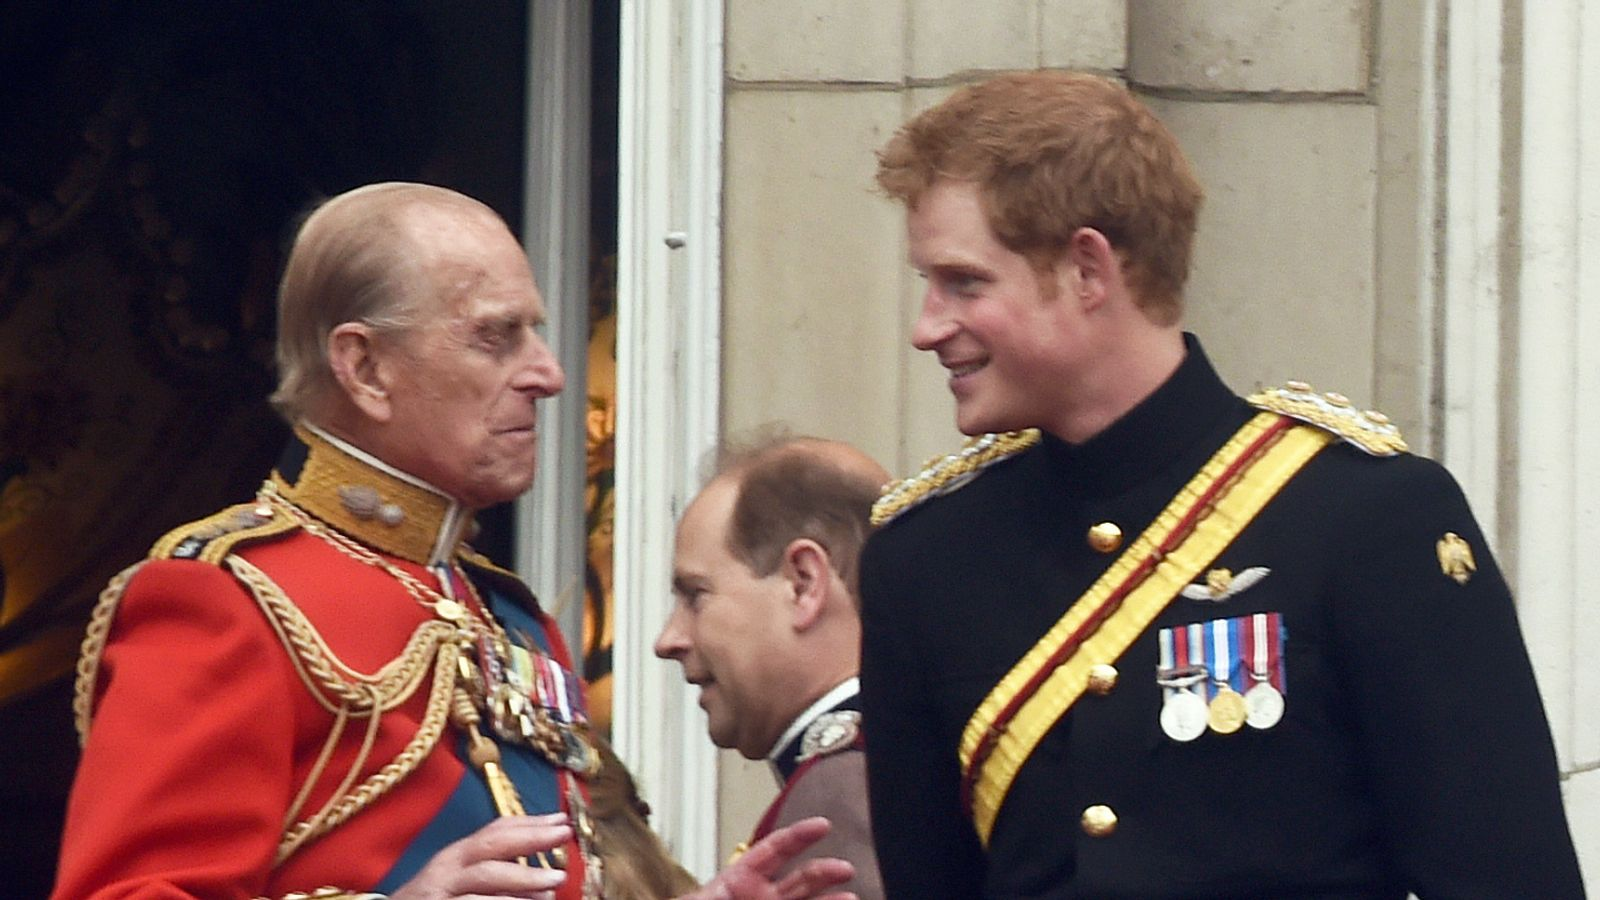 Prince Philip: Royal fans in Harry and Meghan's US home town hope rifts can be smoothed over following Duke's death